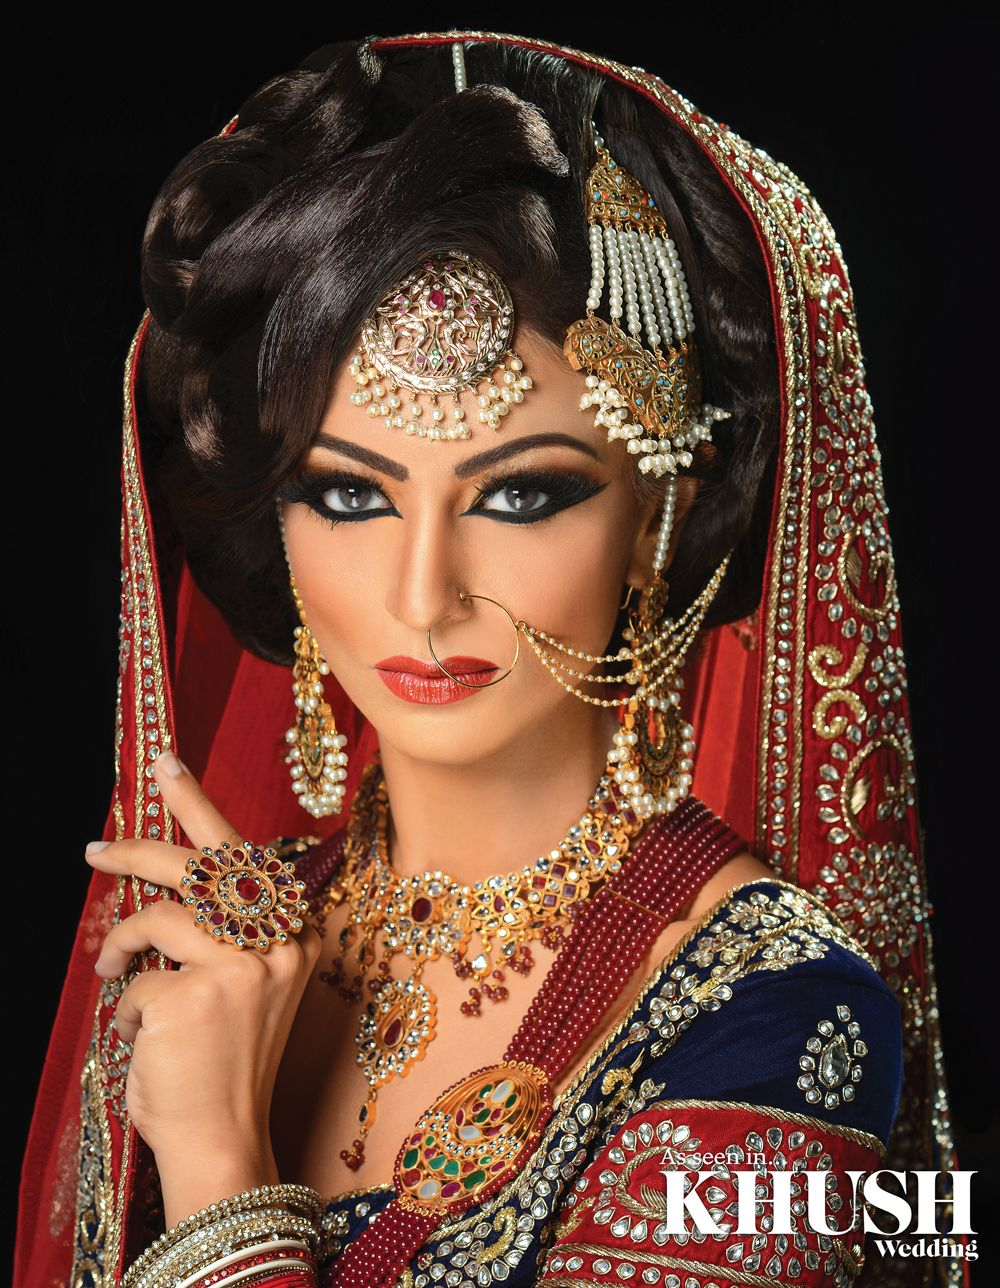 How Stunning Is This Bridal Makeup Look By Shally S Beauty Parlour Wolverhampton Based Indian Bridal Hairstyles Bridal Hair And Makeup Indian Bridal Makeup